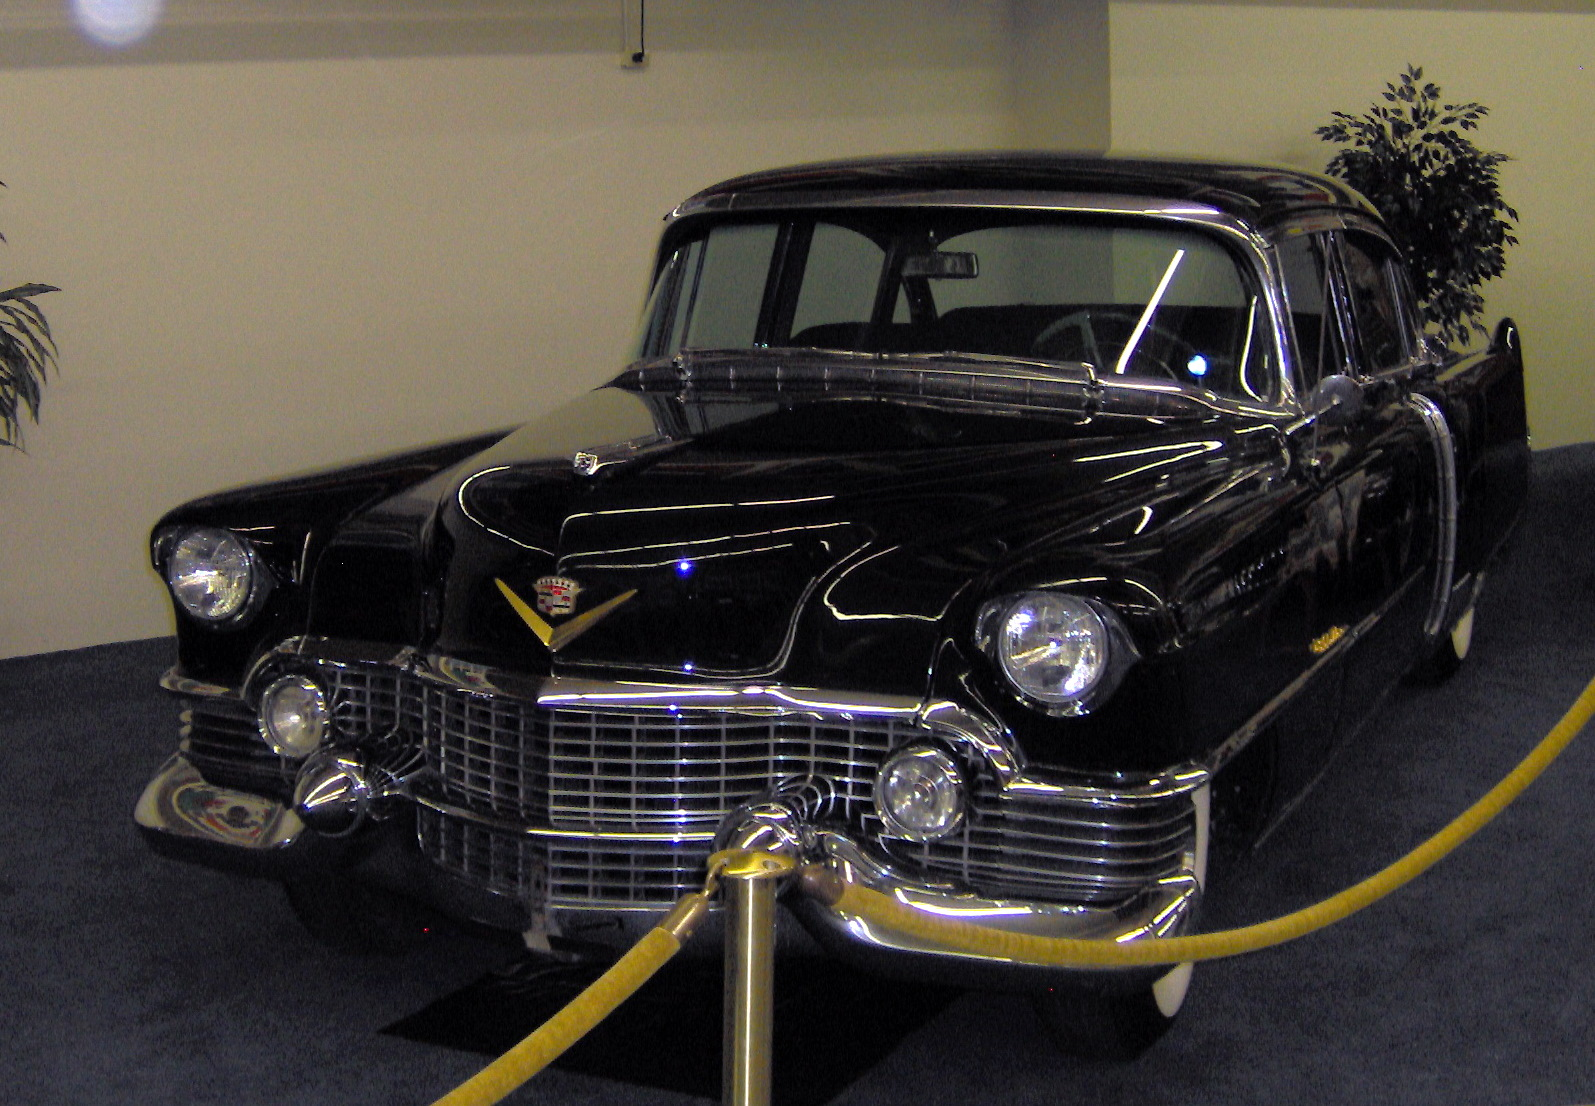 1954 Cadillac Fleetwood Wallpaper For Computer Wallpaper